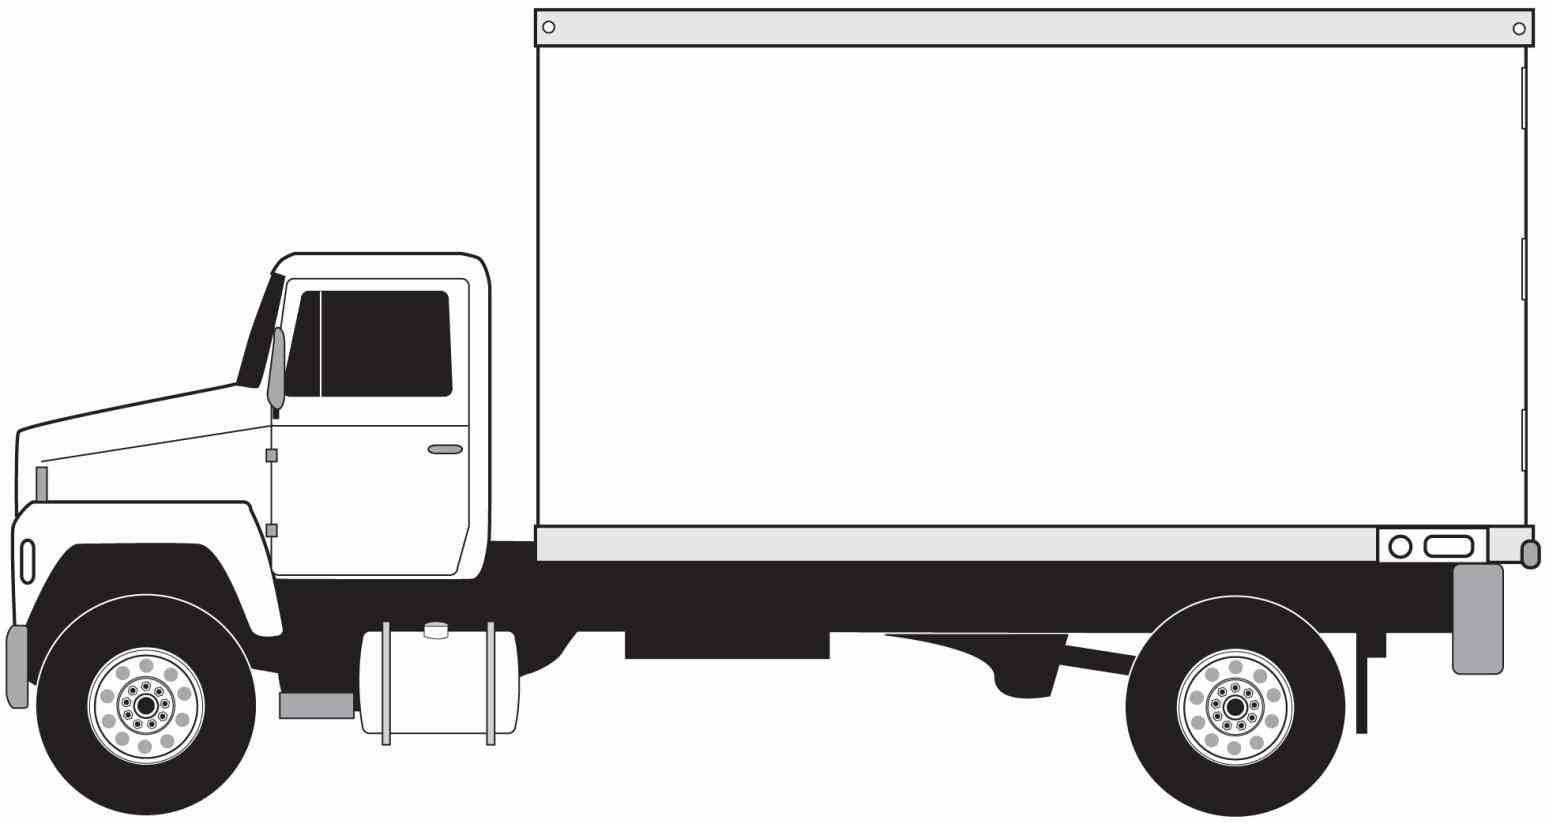 Truck clipart grey Clip of image white sketch